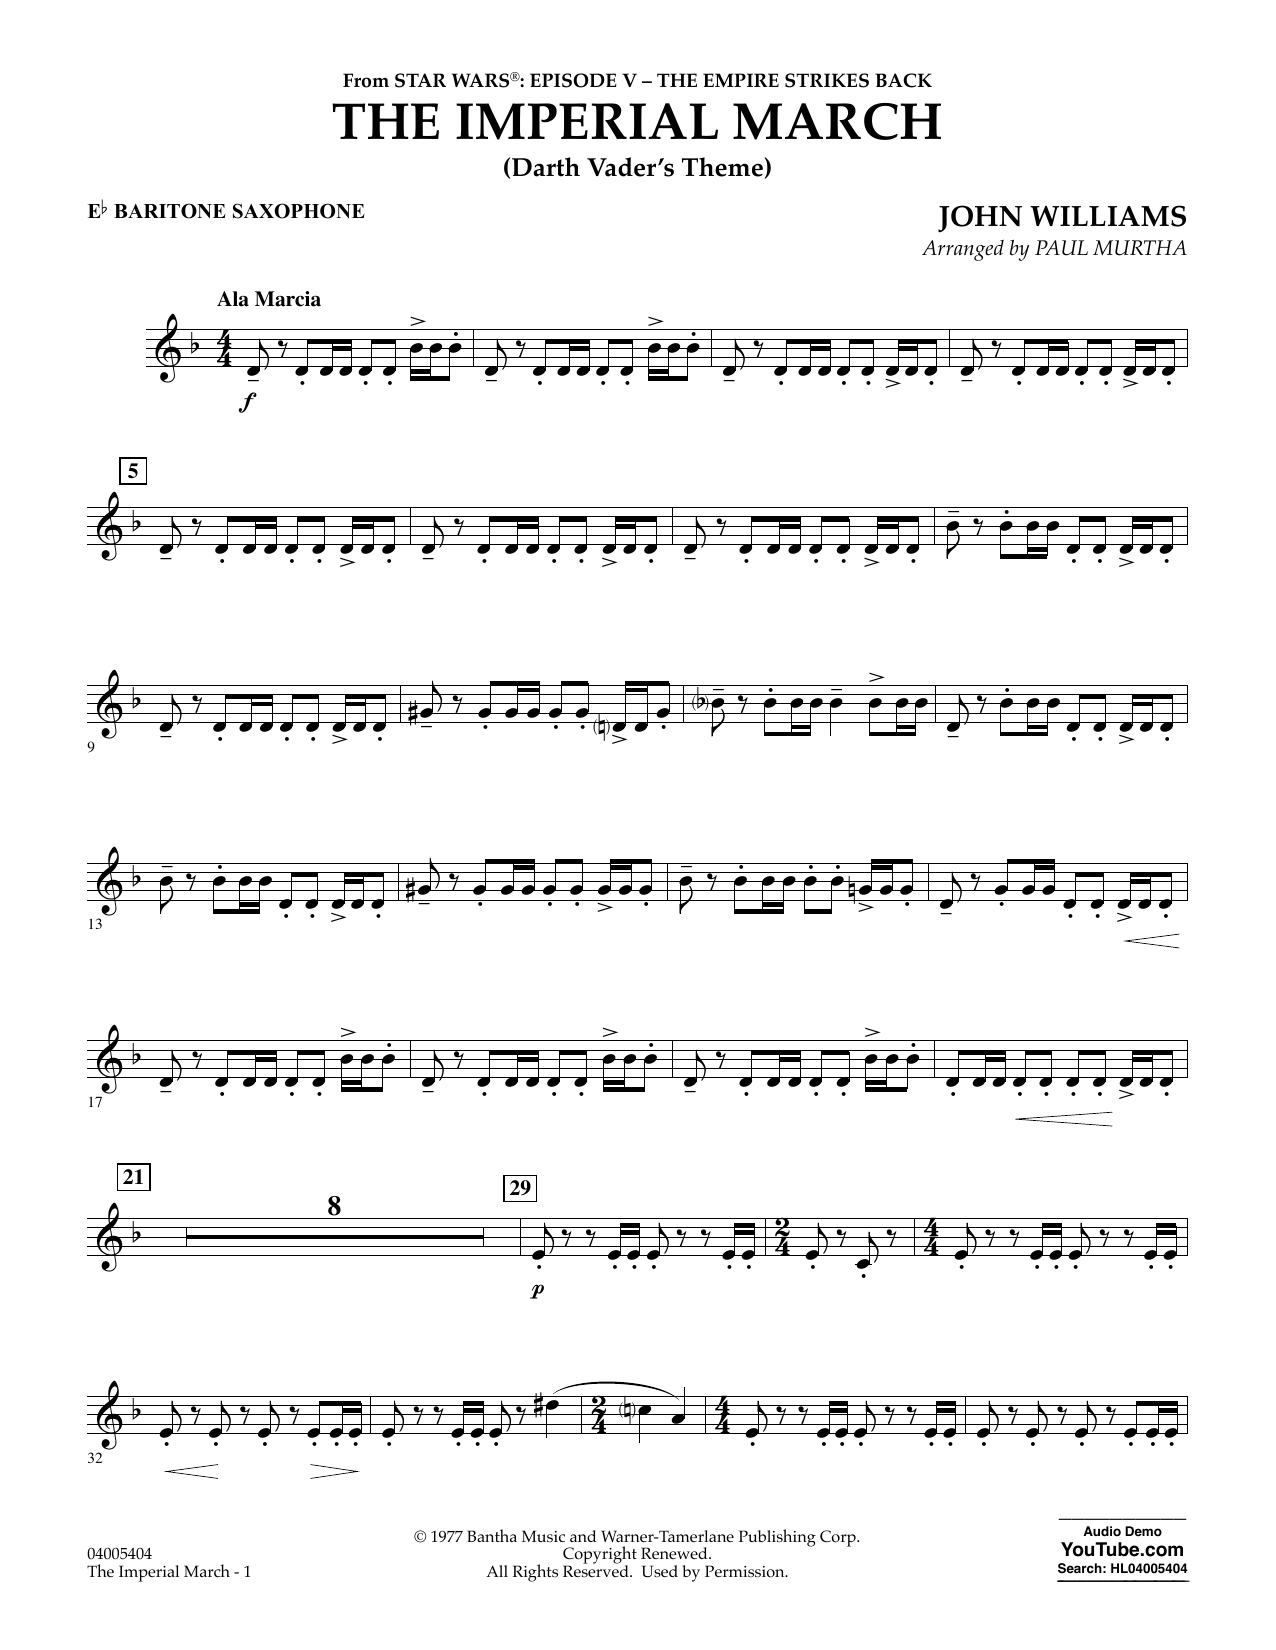 Paul Murtha The Imperial March (Darth Vader's Theme) - Eb Baritone Saxophone sheet music notes and chords. Download Printable PDF.